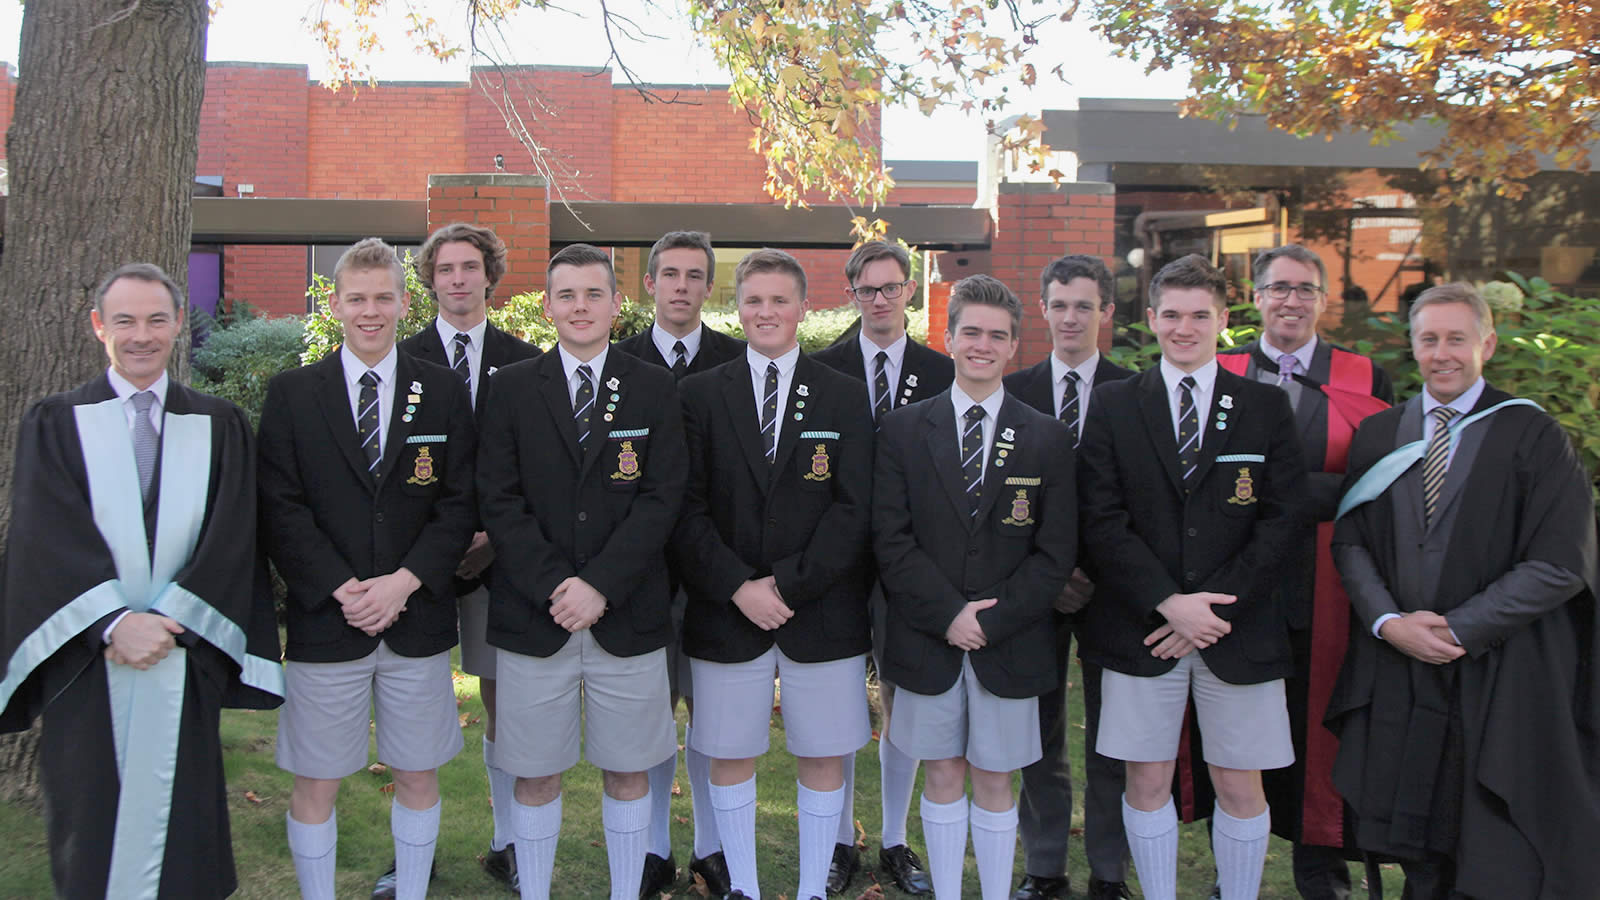 Dr Rob McEwan (Headmaster), Dr Adam Forsyth (Deputy Headmaster) and Mr Roger McNamara (Head of Senior School) with the newly inducted Prefects.